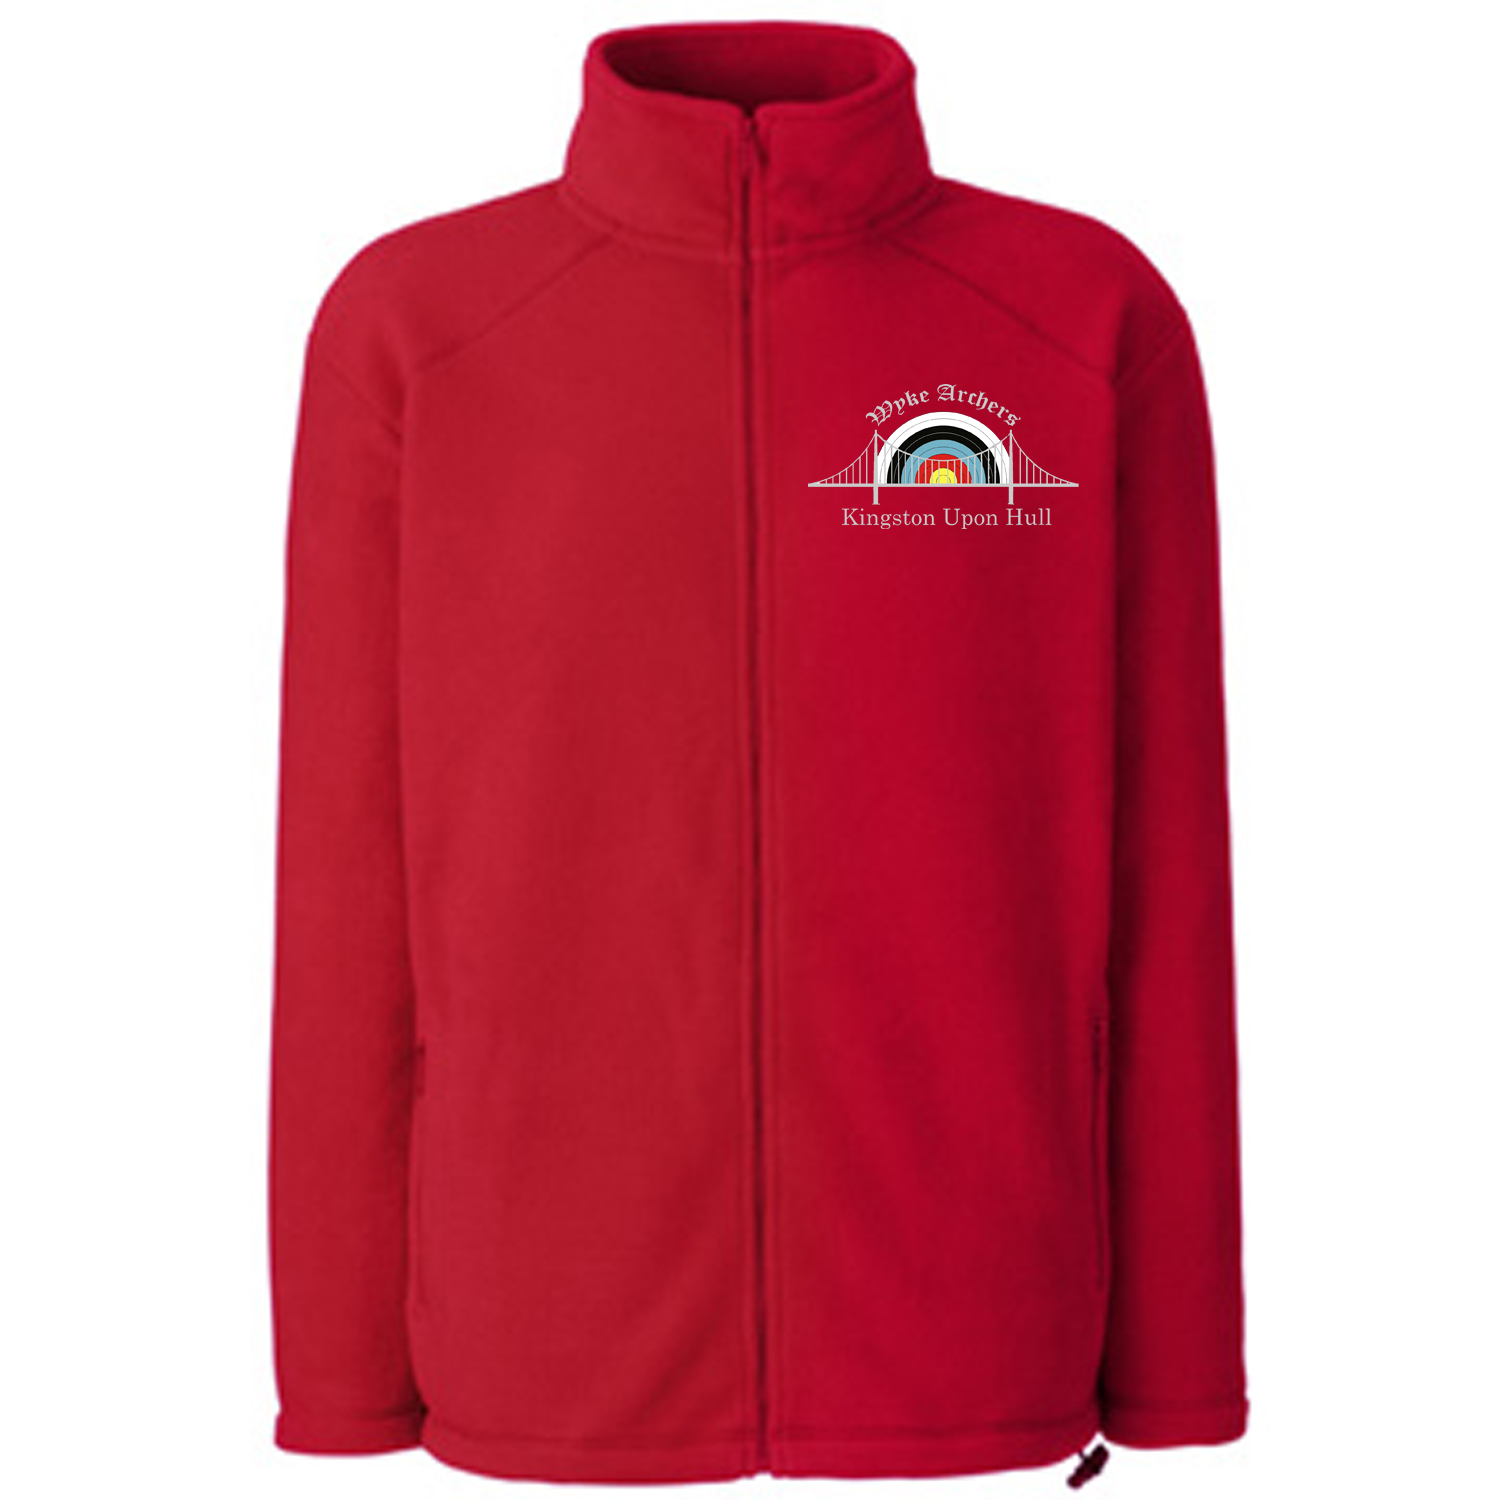 62510: Men's Full Zip Outdoor Fleece (Fruit Of The Loom)